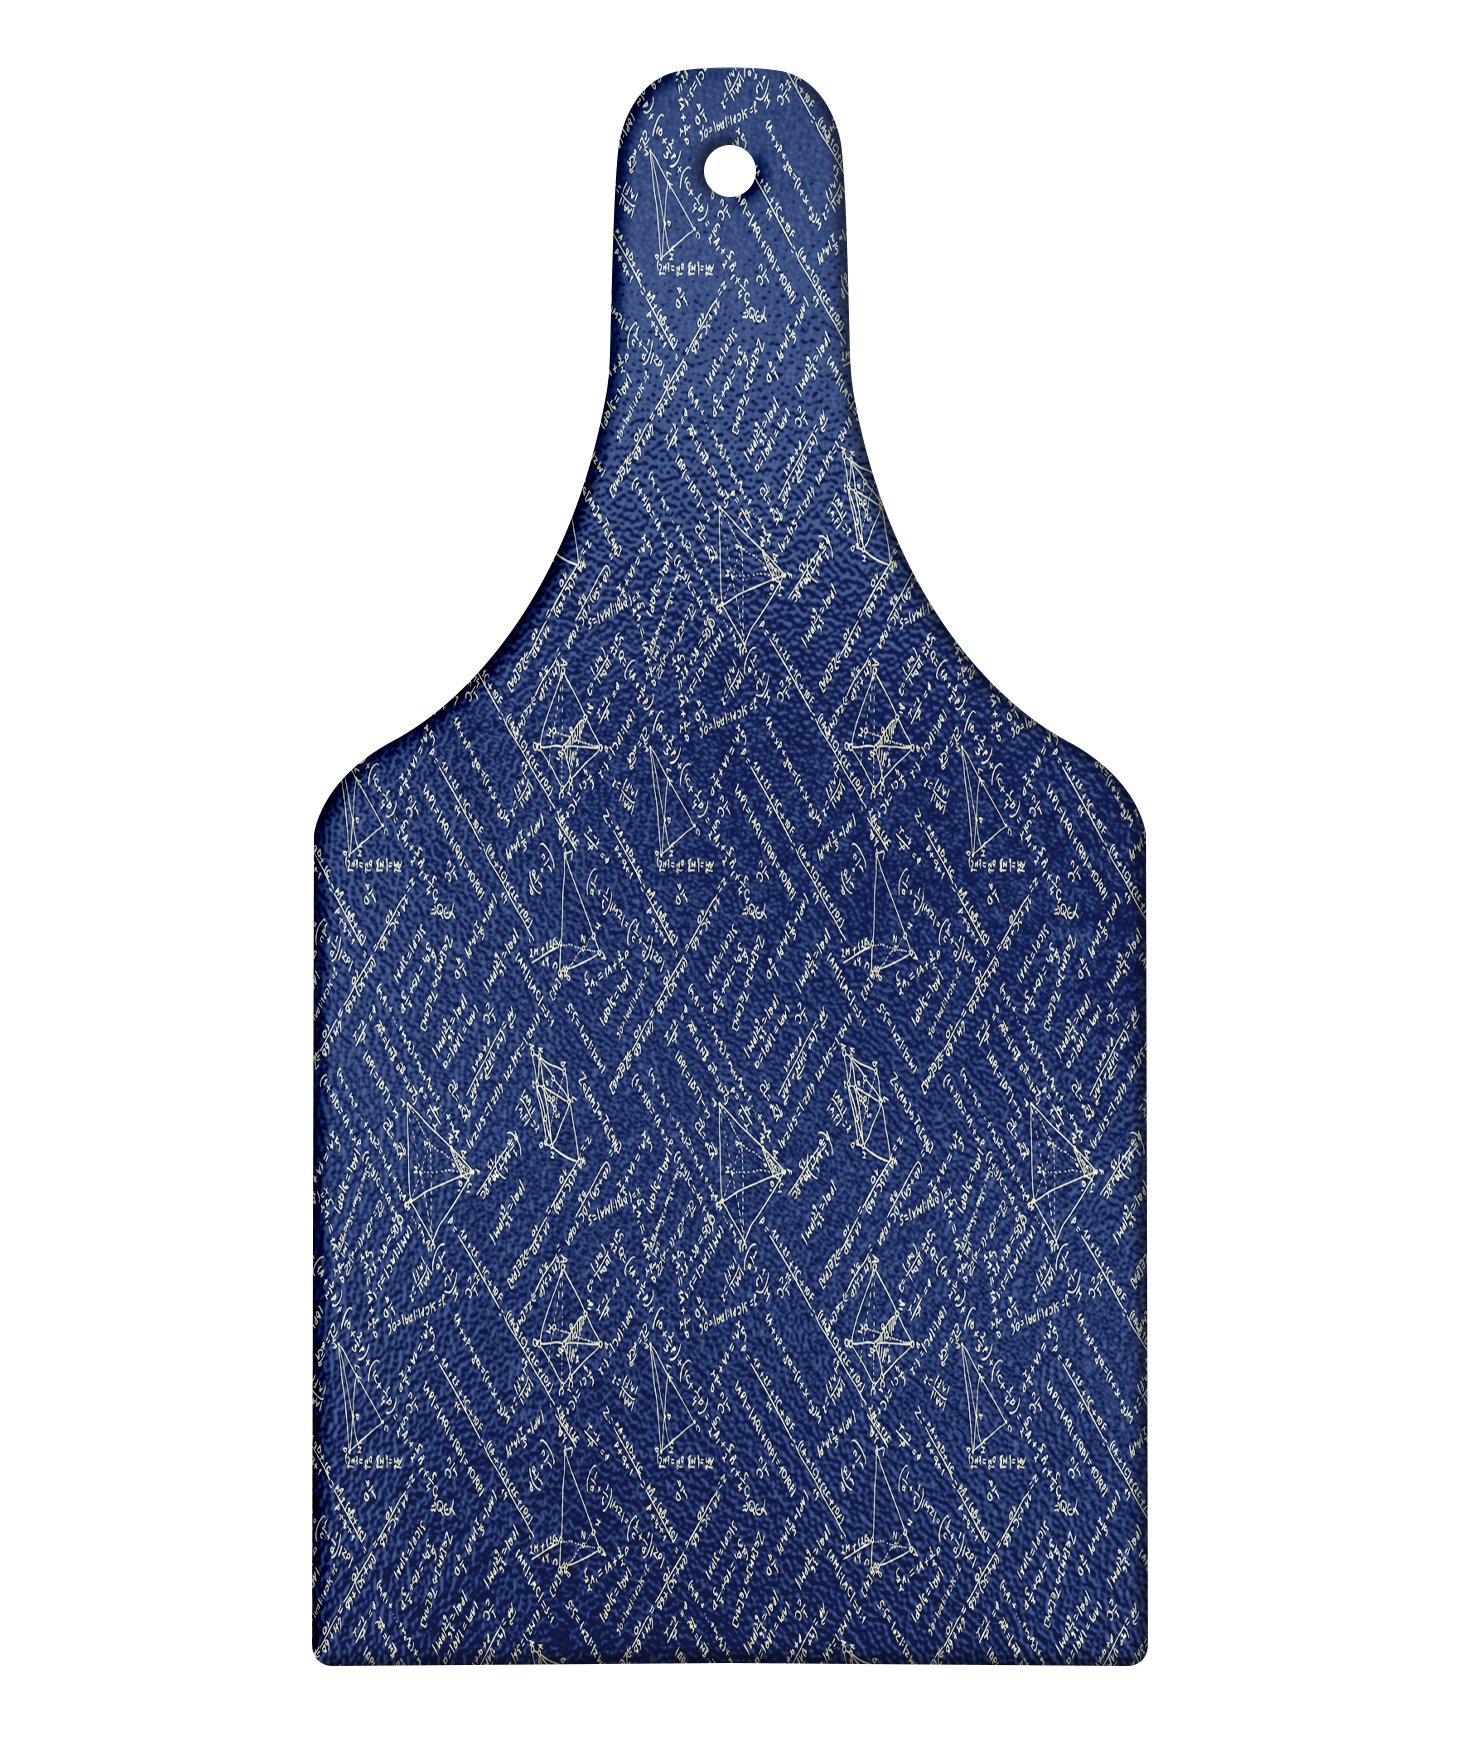 Lunarable Math Cutting Board, School Themed Equations Division and Geometrical Shapes on Dark Toned Backdrop, Decorative Tempered Glass Cutting and Serving Board, Wine Bottle Shape, Violet Blue Beige